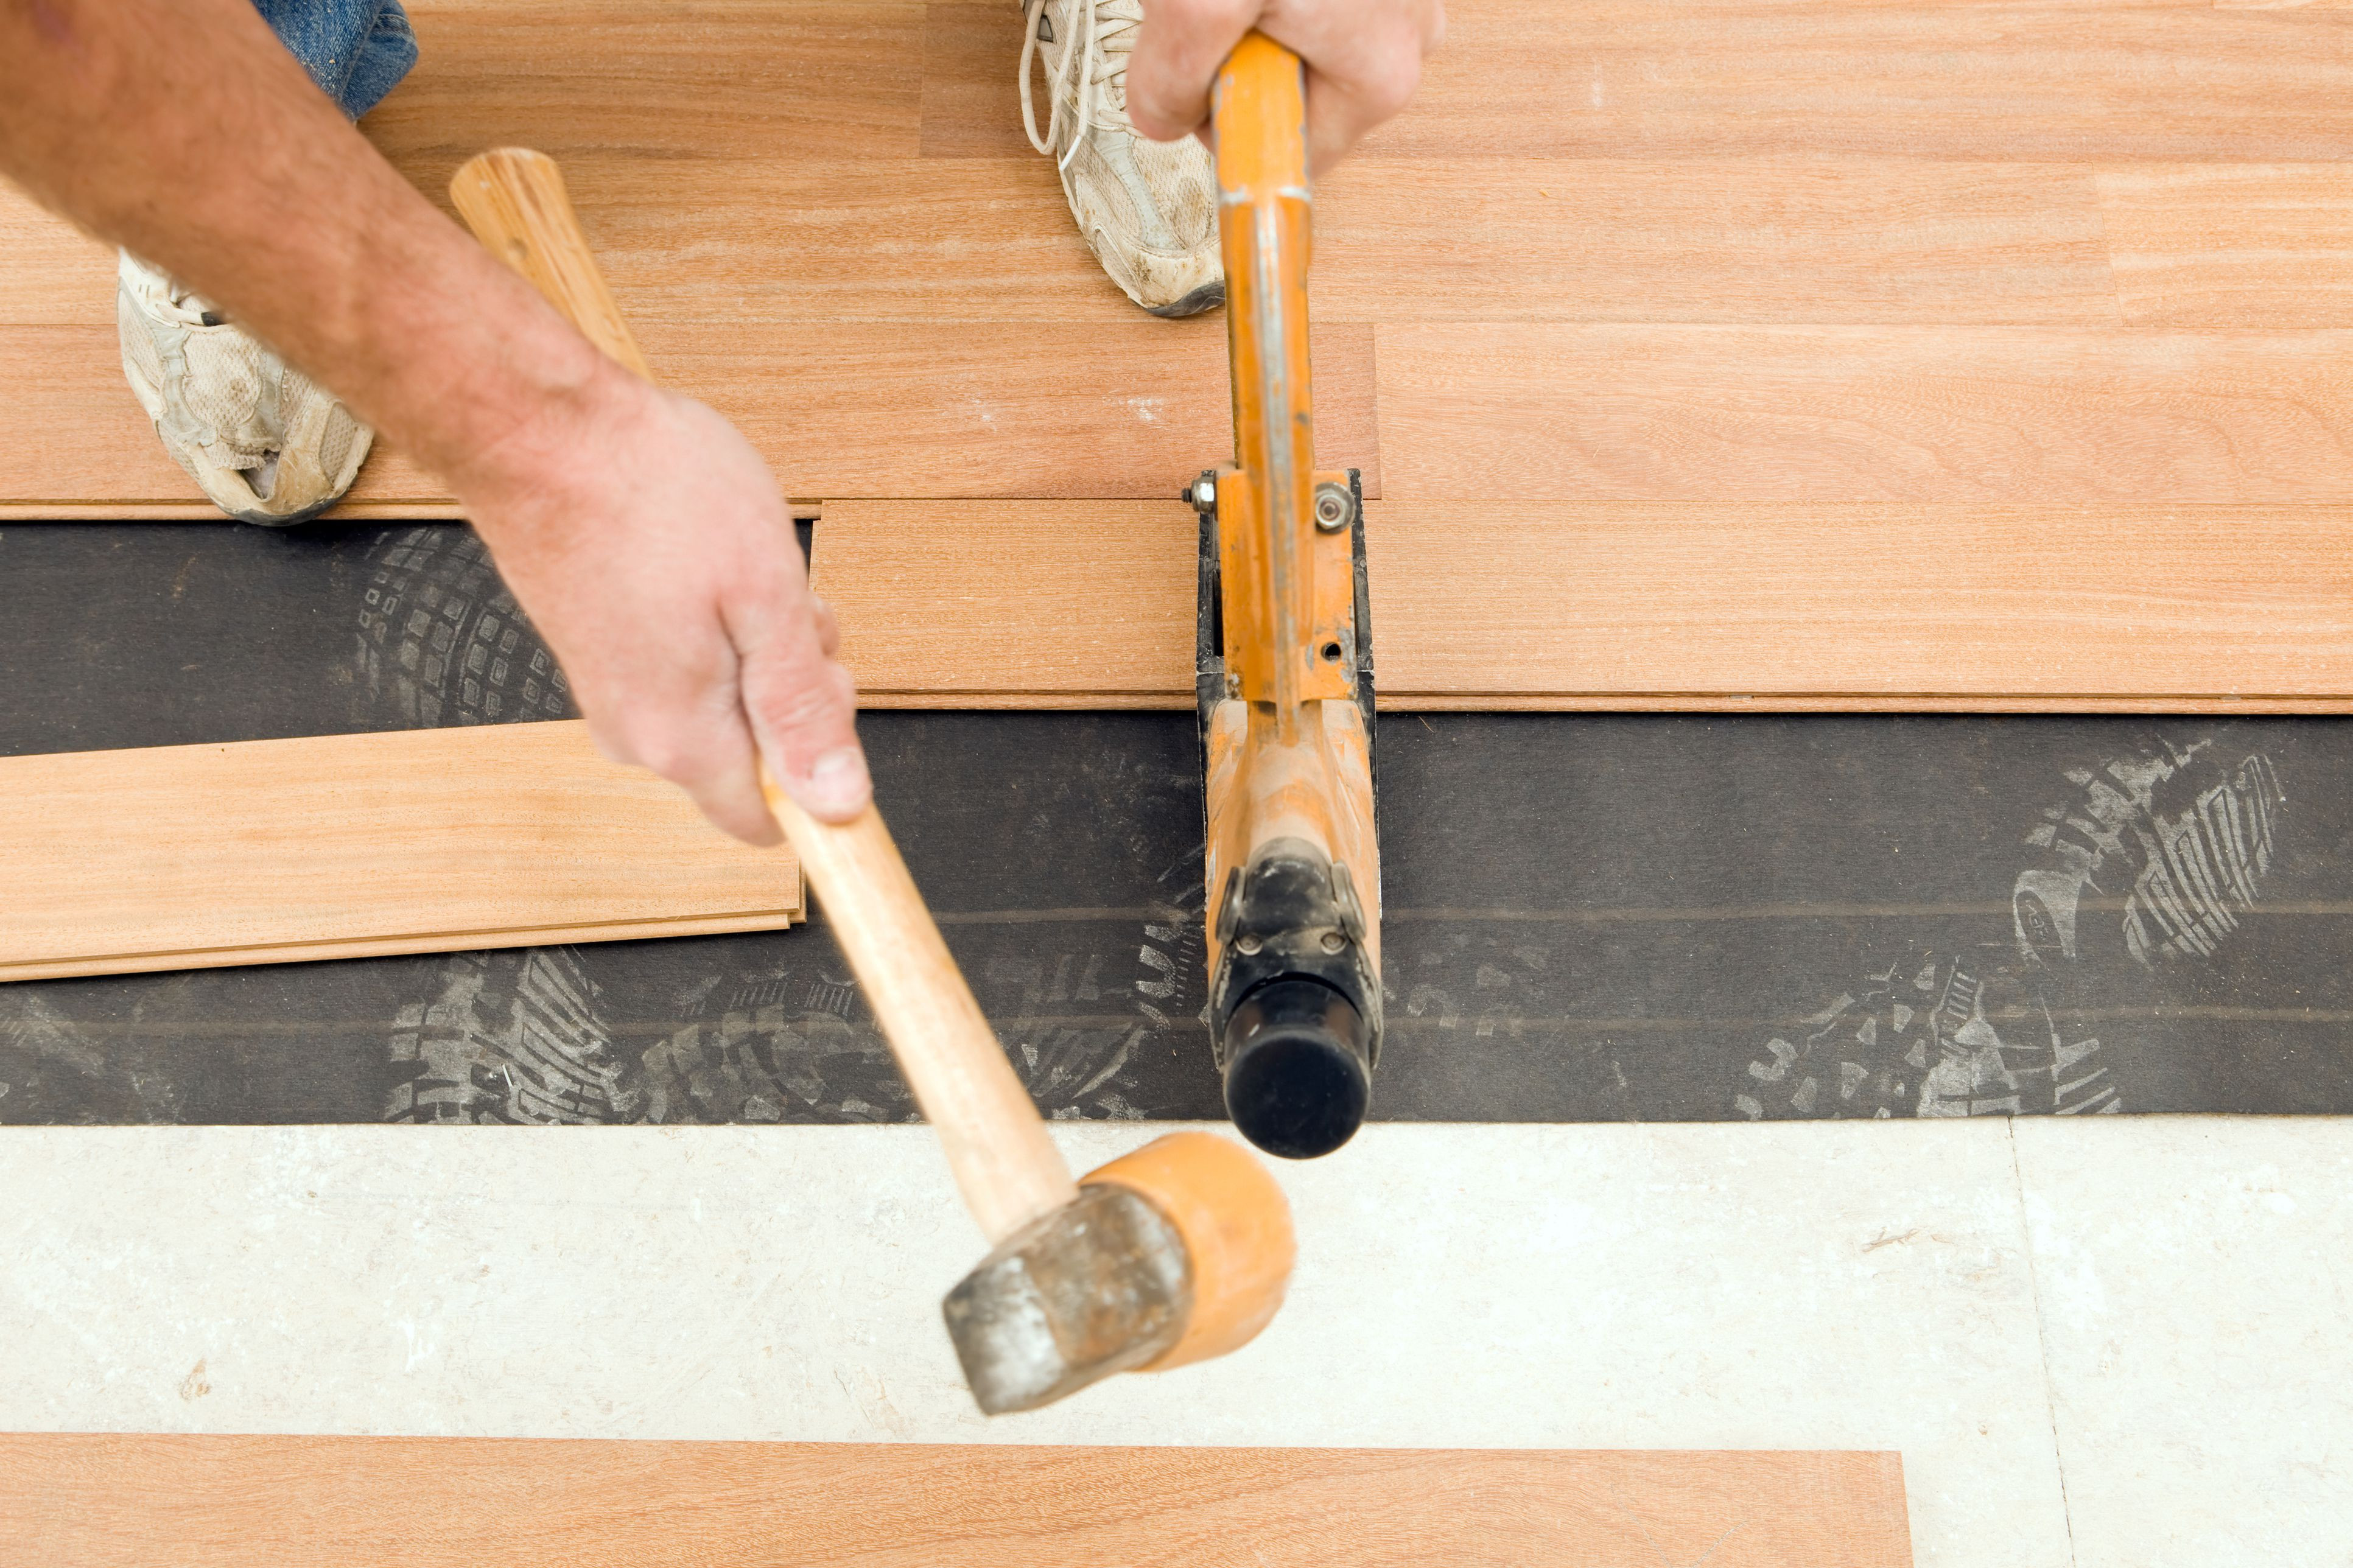 hardwood flooring ratings and reviews of the hardest wood flooring you can buy inside worker installing new cumuru hardwood floor 186852280 5827f3bc5f9b58d5b11372fc